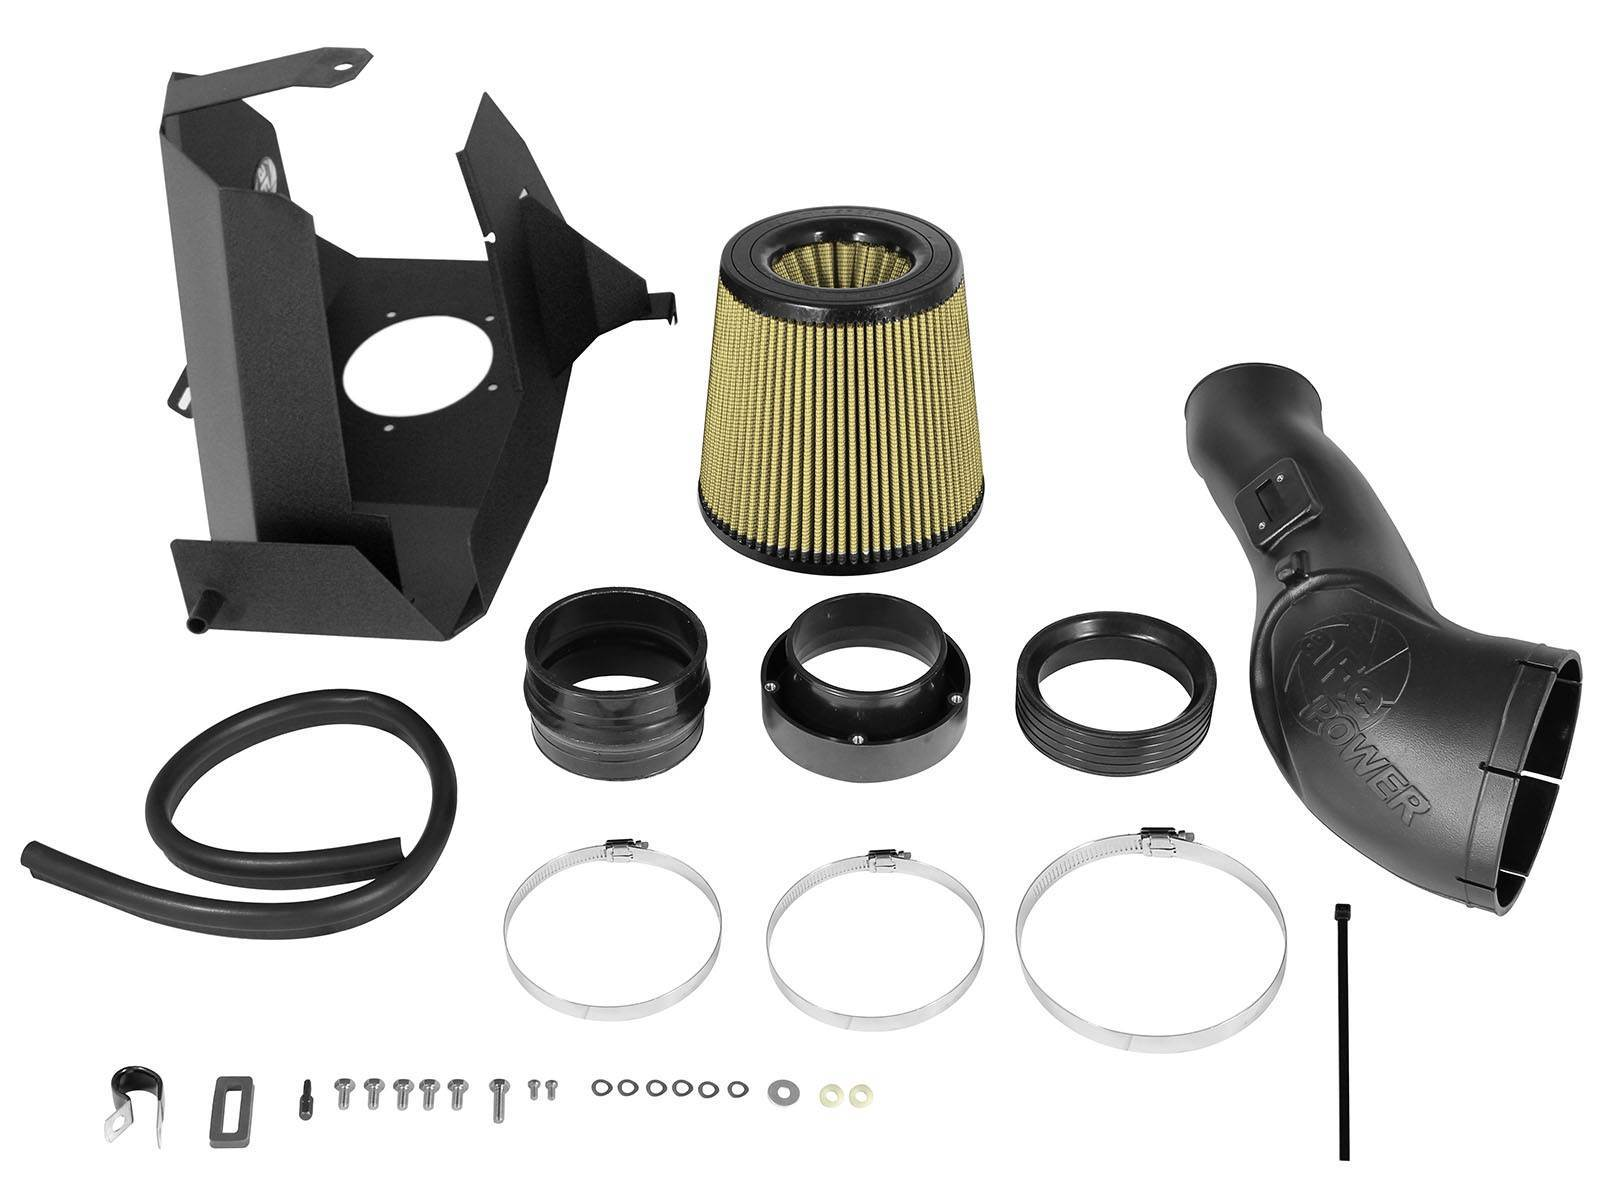 75-11872-1 - aFE Pro Guard 7 Performance Cold Air Intake System for 2011-2016 Ford Powerstroke 6.7L diesels - Kit Contents